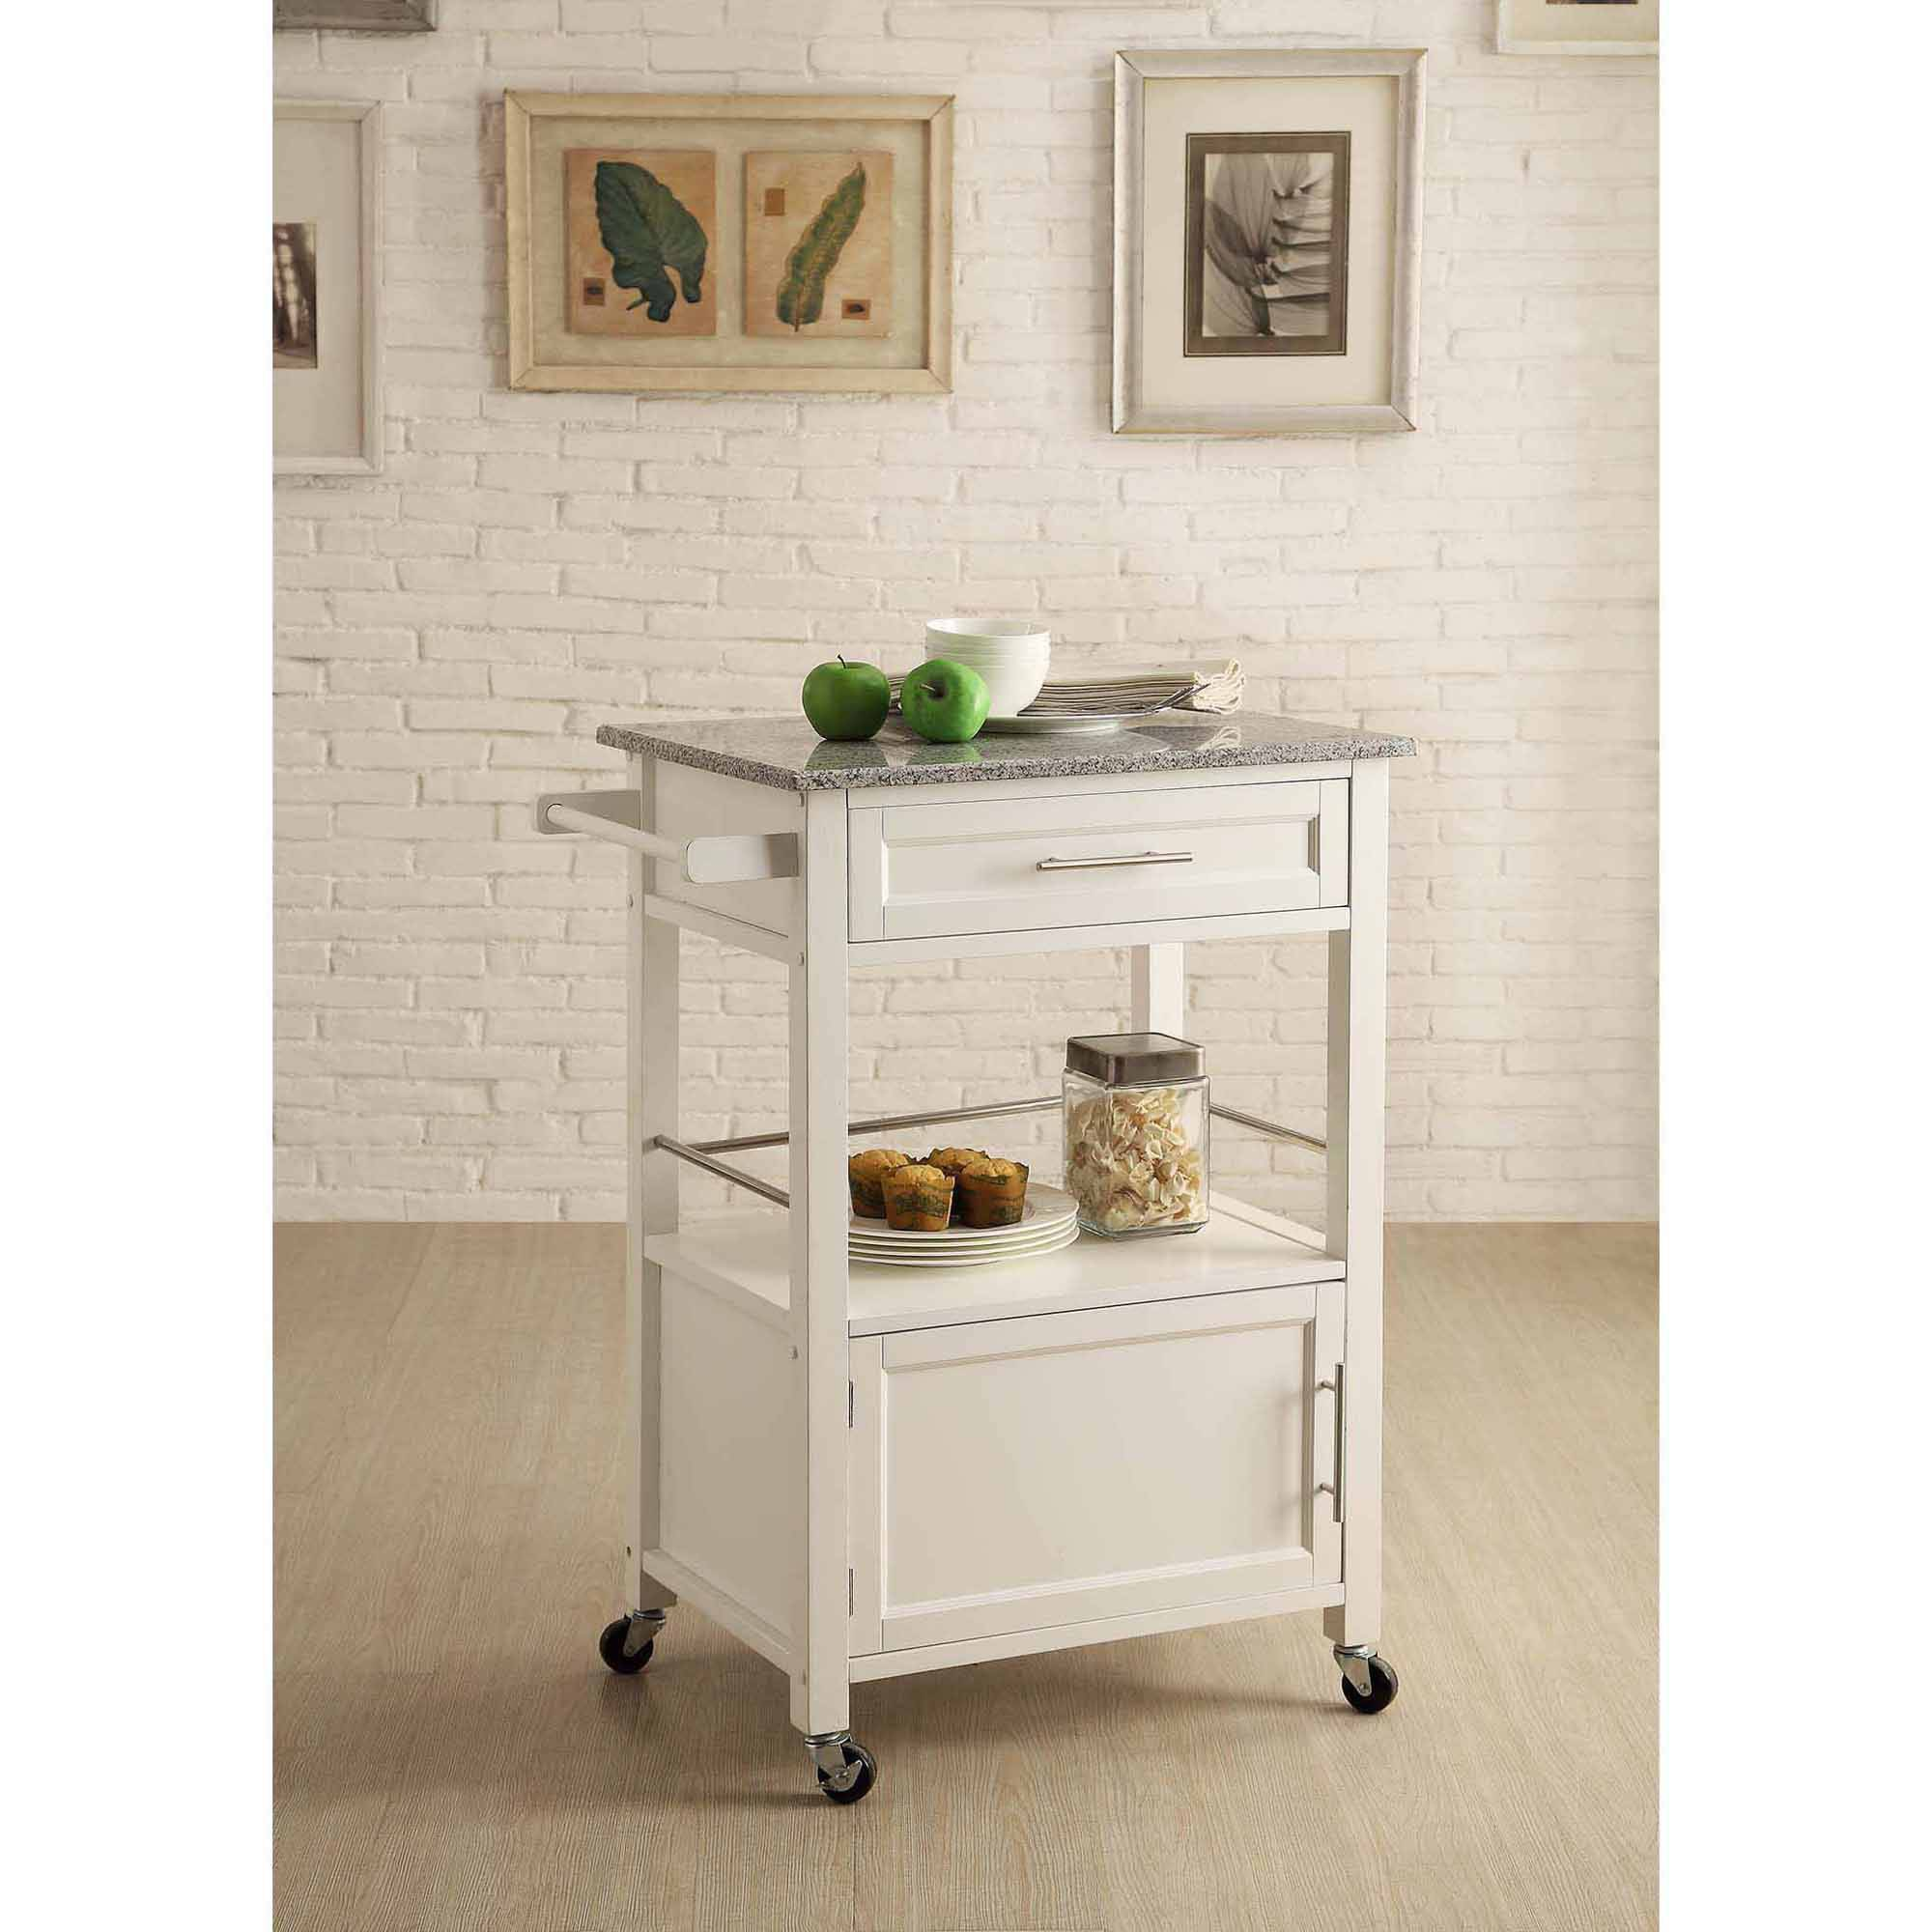 Linon Mitchell Kitchen Cart with Granite Top, 36 inches High, White